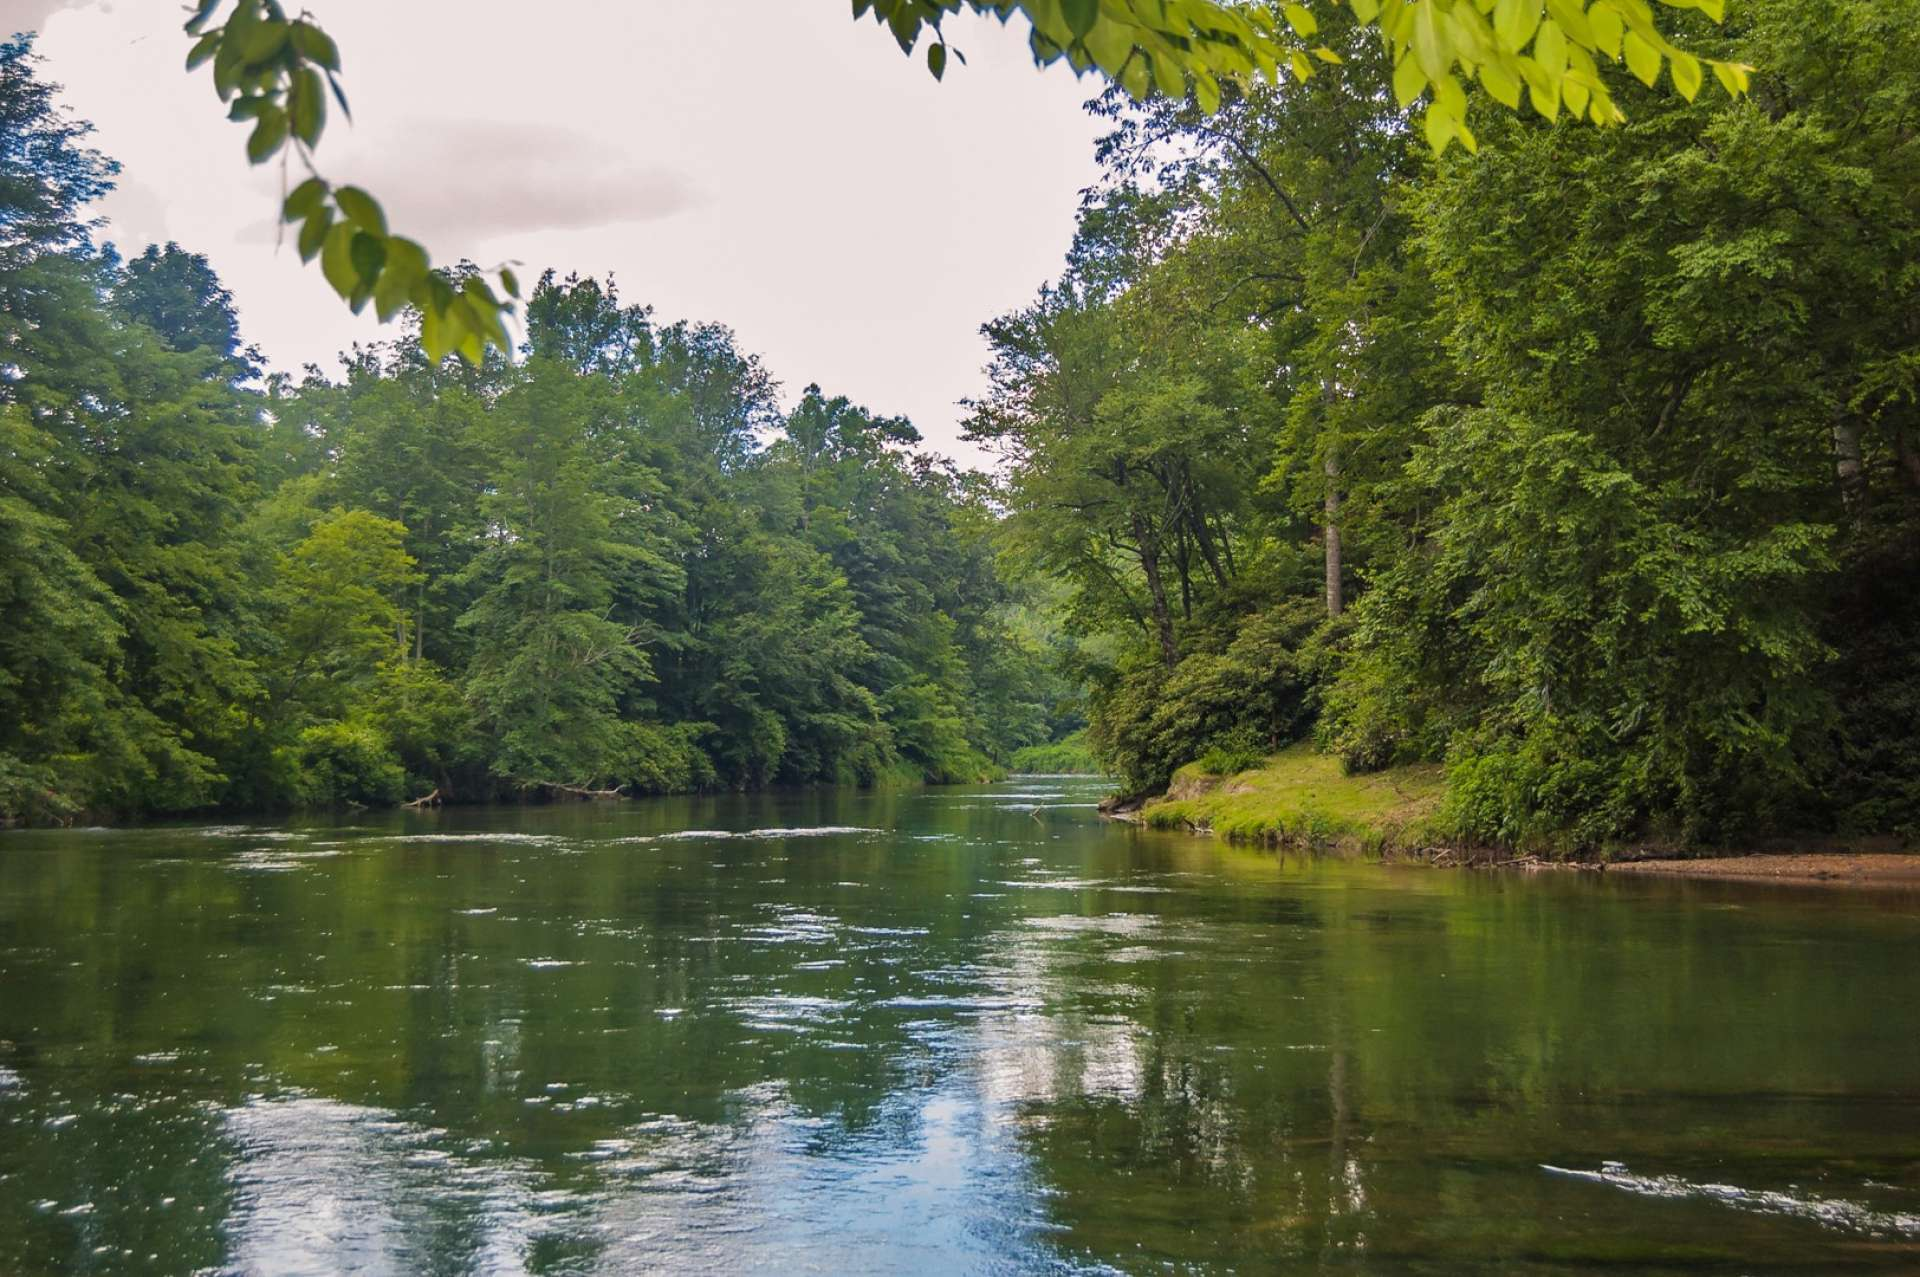 Private level river frontage enables easy access for water sports such as tubing, kayaking, canoeing, and fishing.